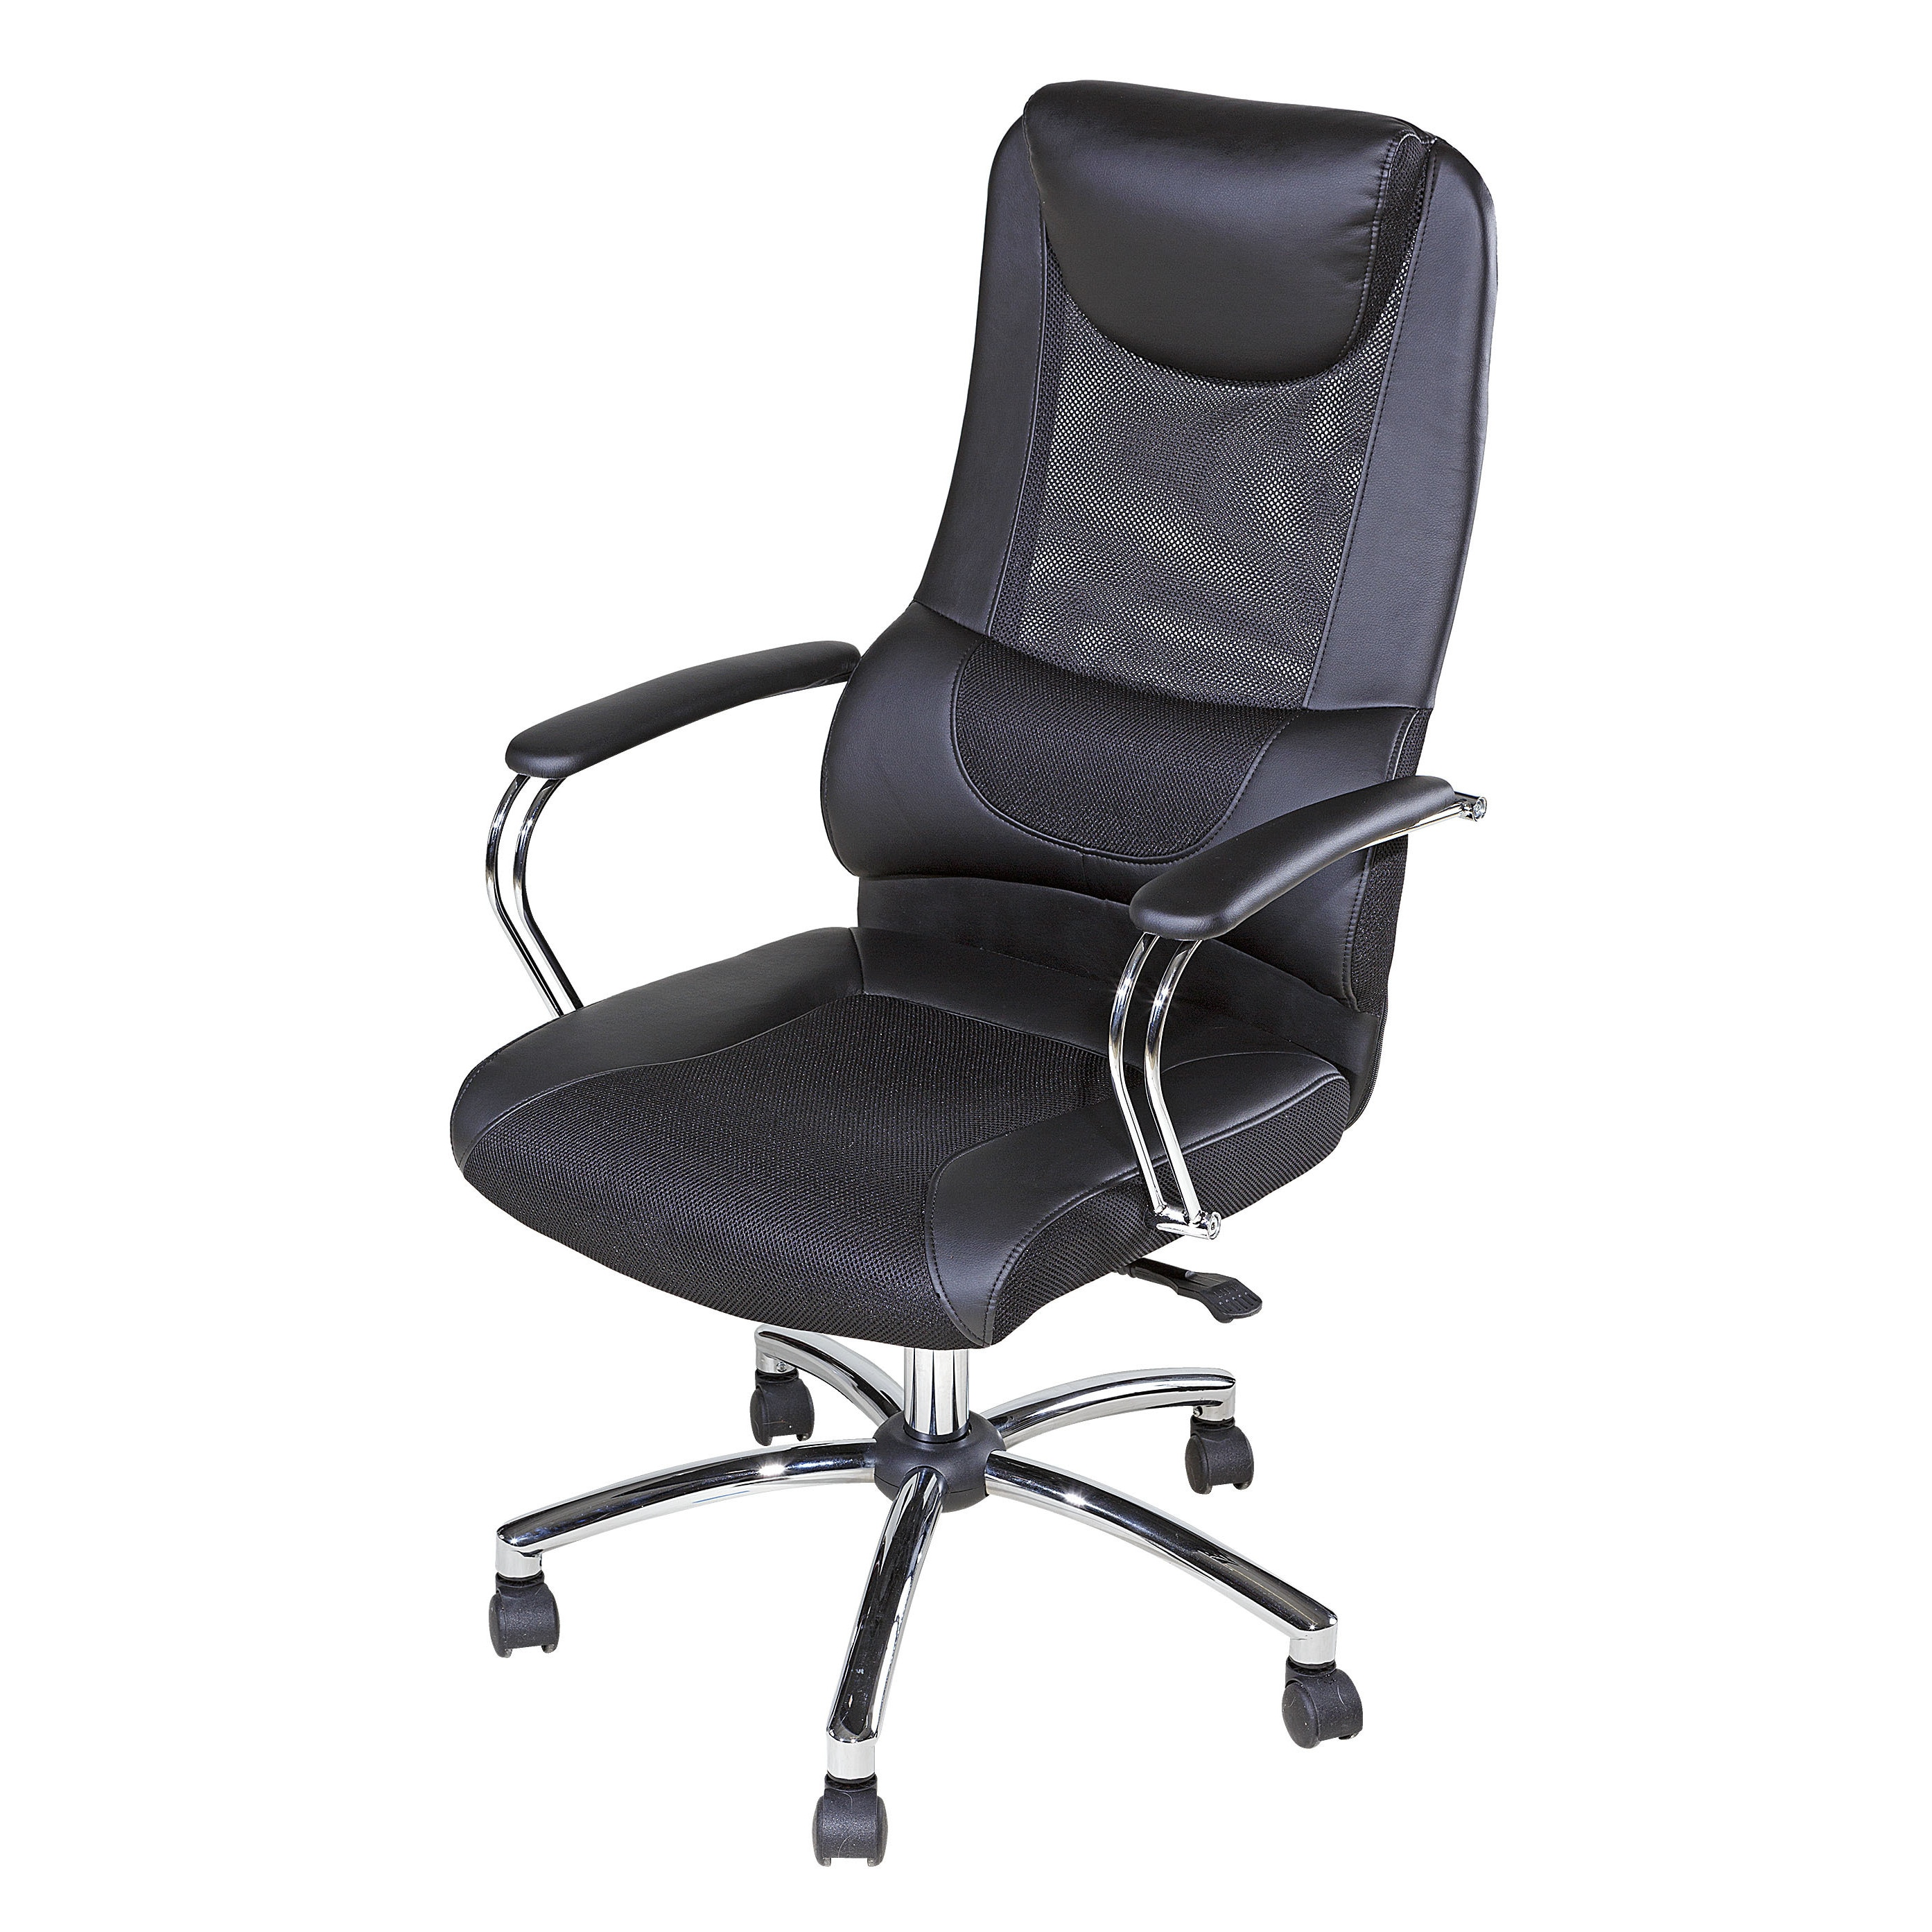 eSpace 60 5902 Black Mesh High back Executive Chair with Head and